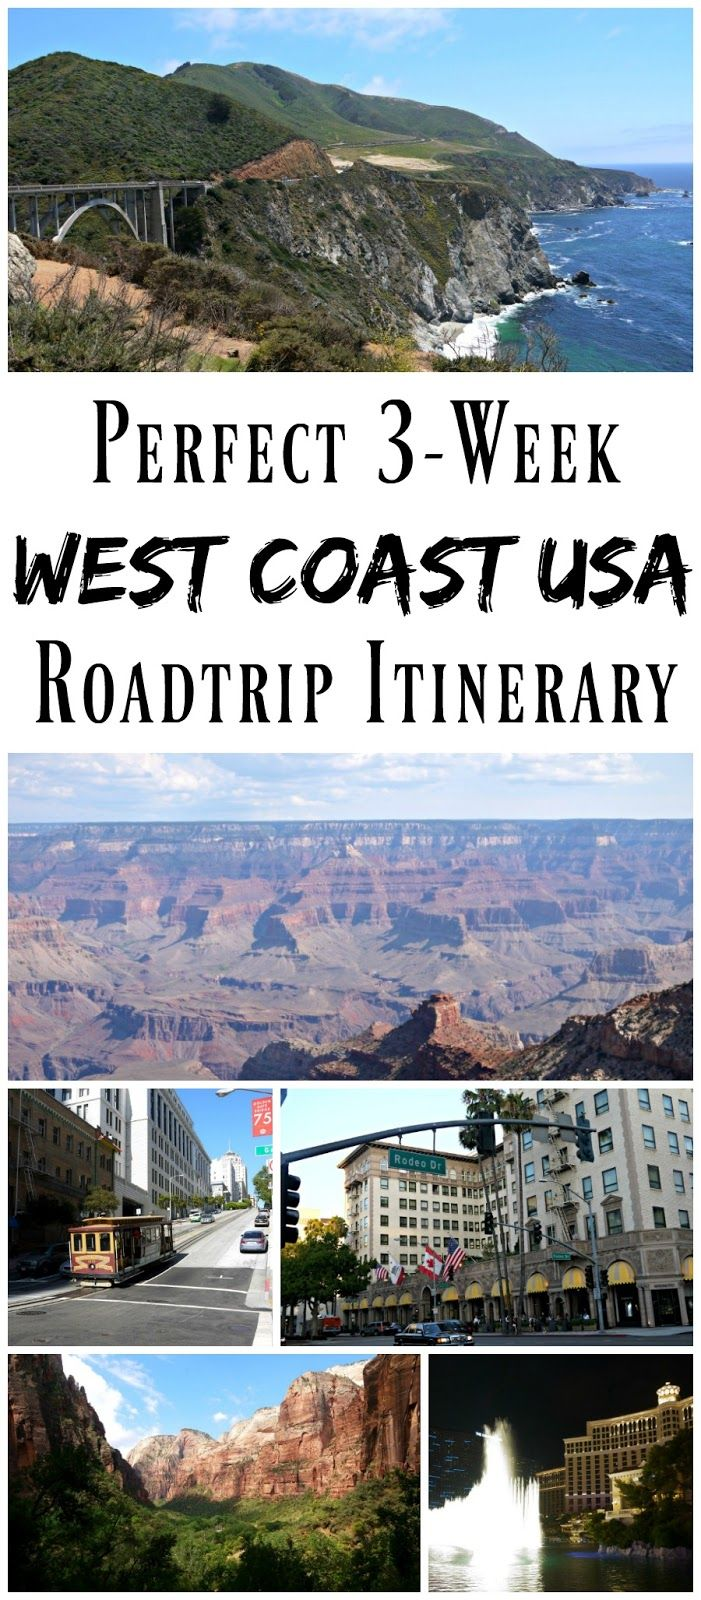 PIN FOR LATER: The Perfect 3-Week West Coast USA Roadtrip Itinerary! Start in San Francisco, then drive down the Pacific Coast Highway through Big Sur to Pismo Beach. From there you go to Beverly Hills, Phoenix, Sedona, Grand Canyon, Zion National Park, and Las Vegas! The most epic North American roadtrip itinerary!